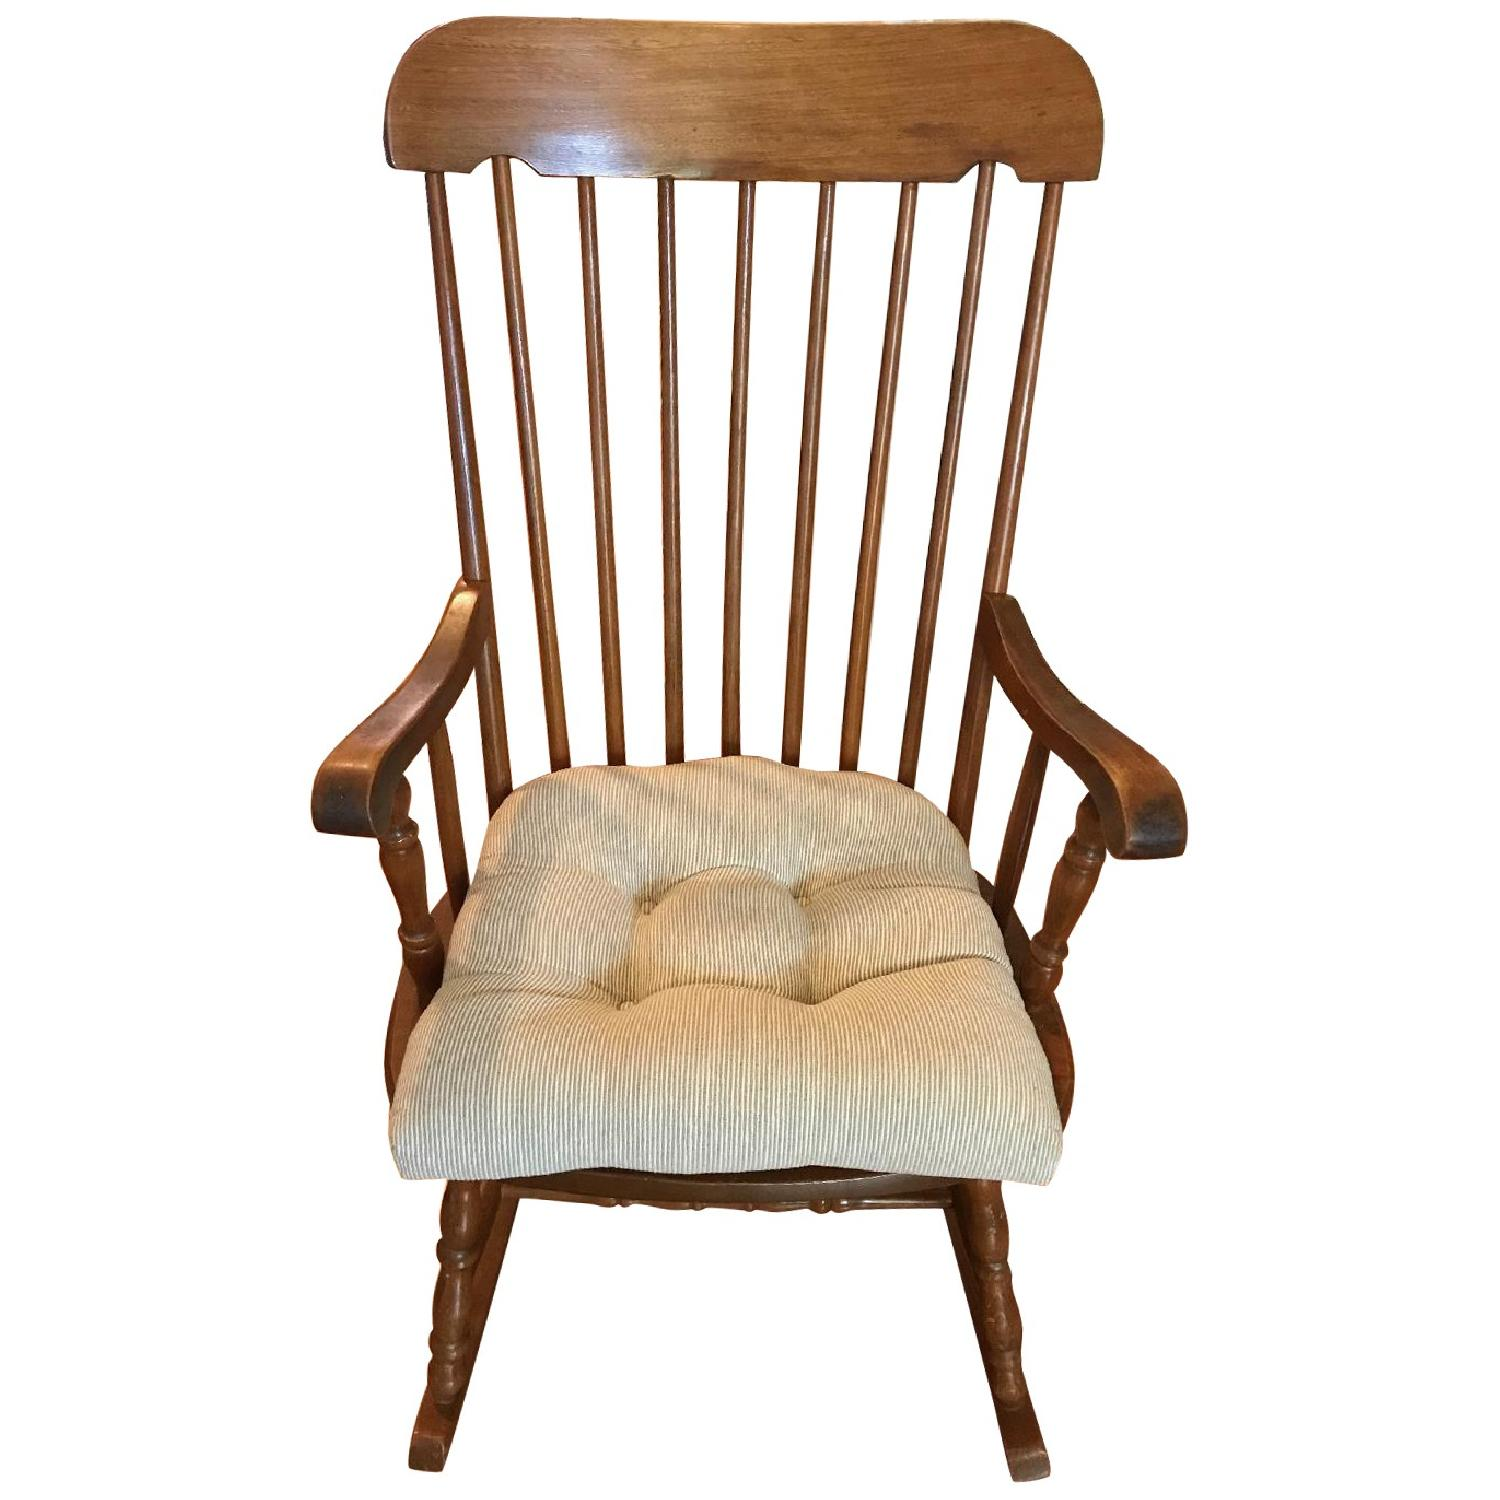 Vintage Wooden Rocking Chair - image-0